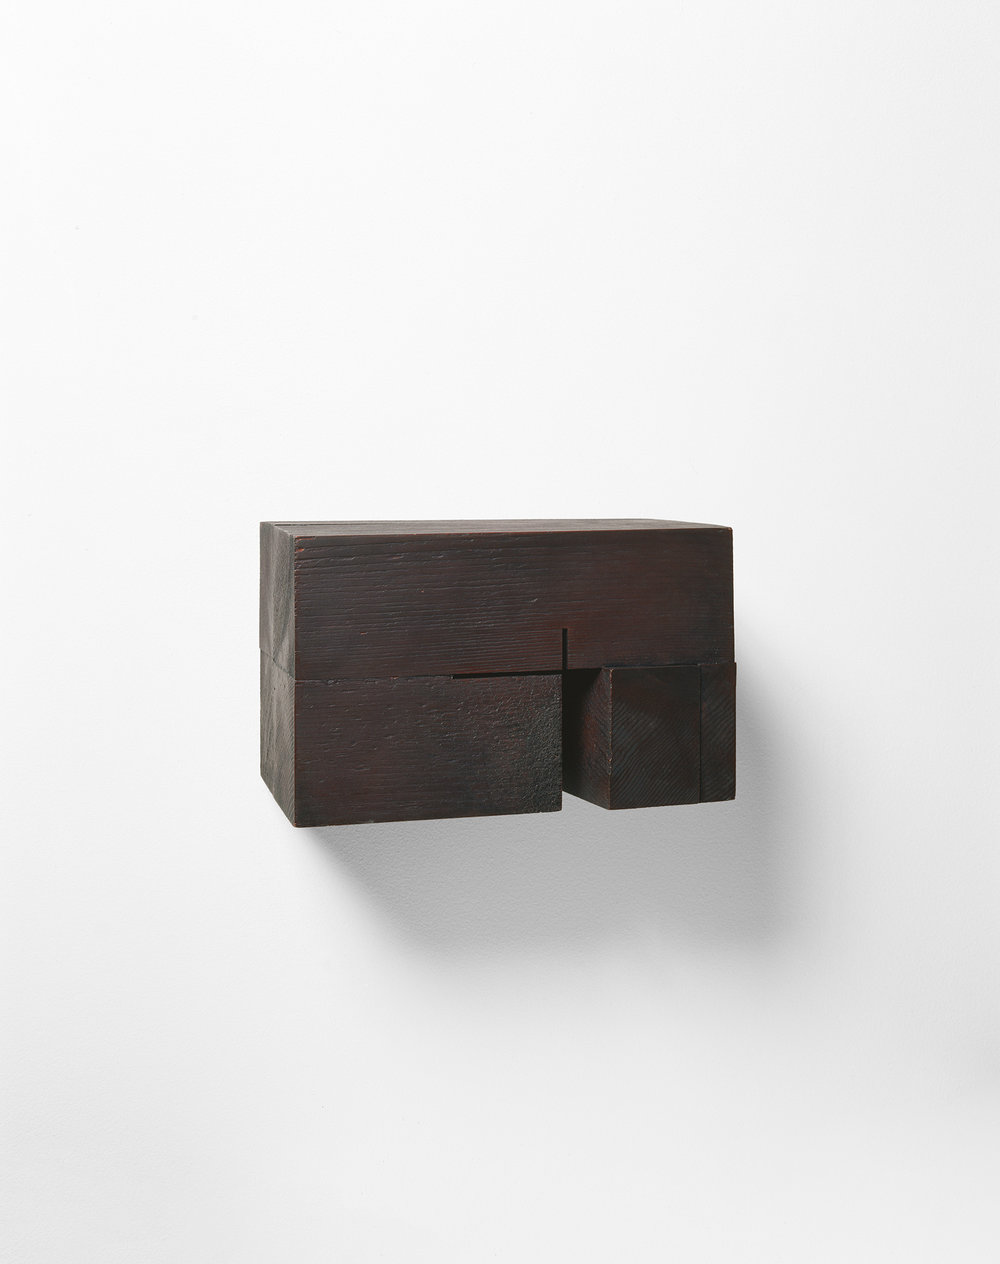 Demeure XVIII  (1990)   Bois polychrome, 16.5 x 27 x 17 cm, collection du Conseil des arts du Canada. photo : Richard-Max Tremblay